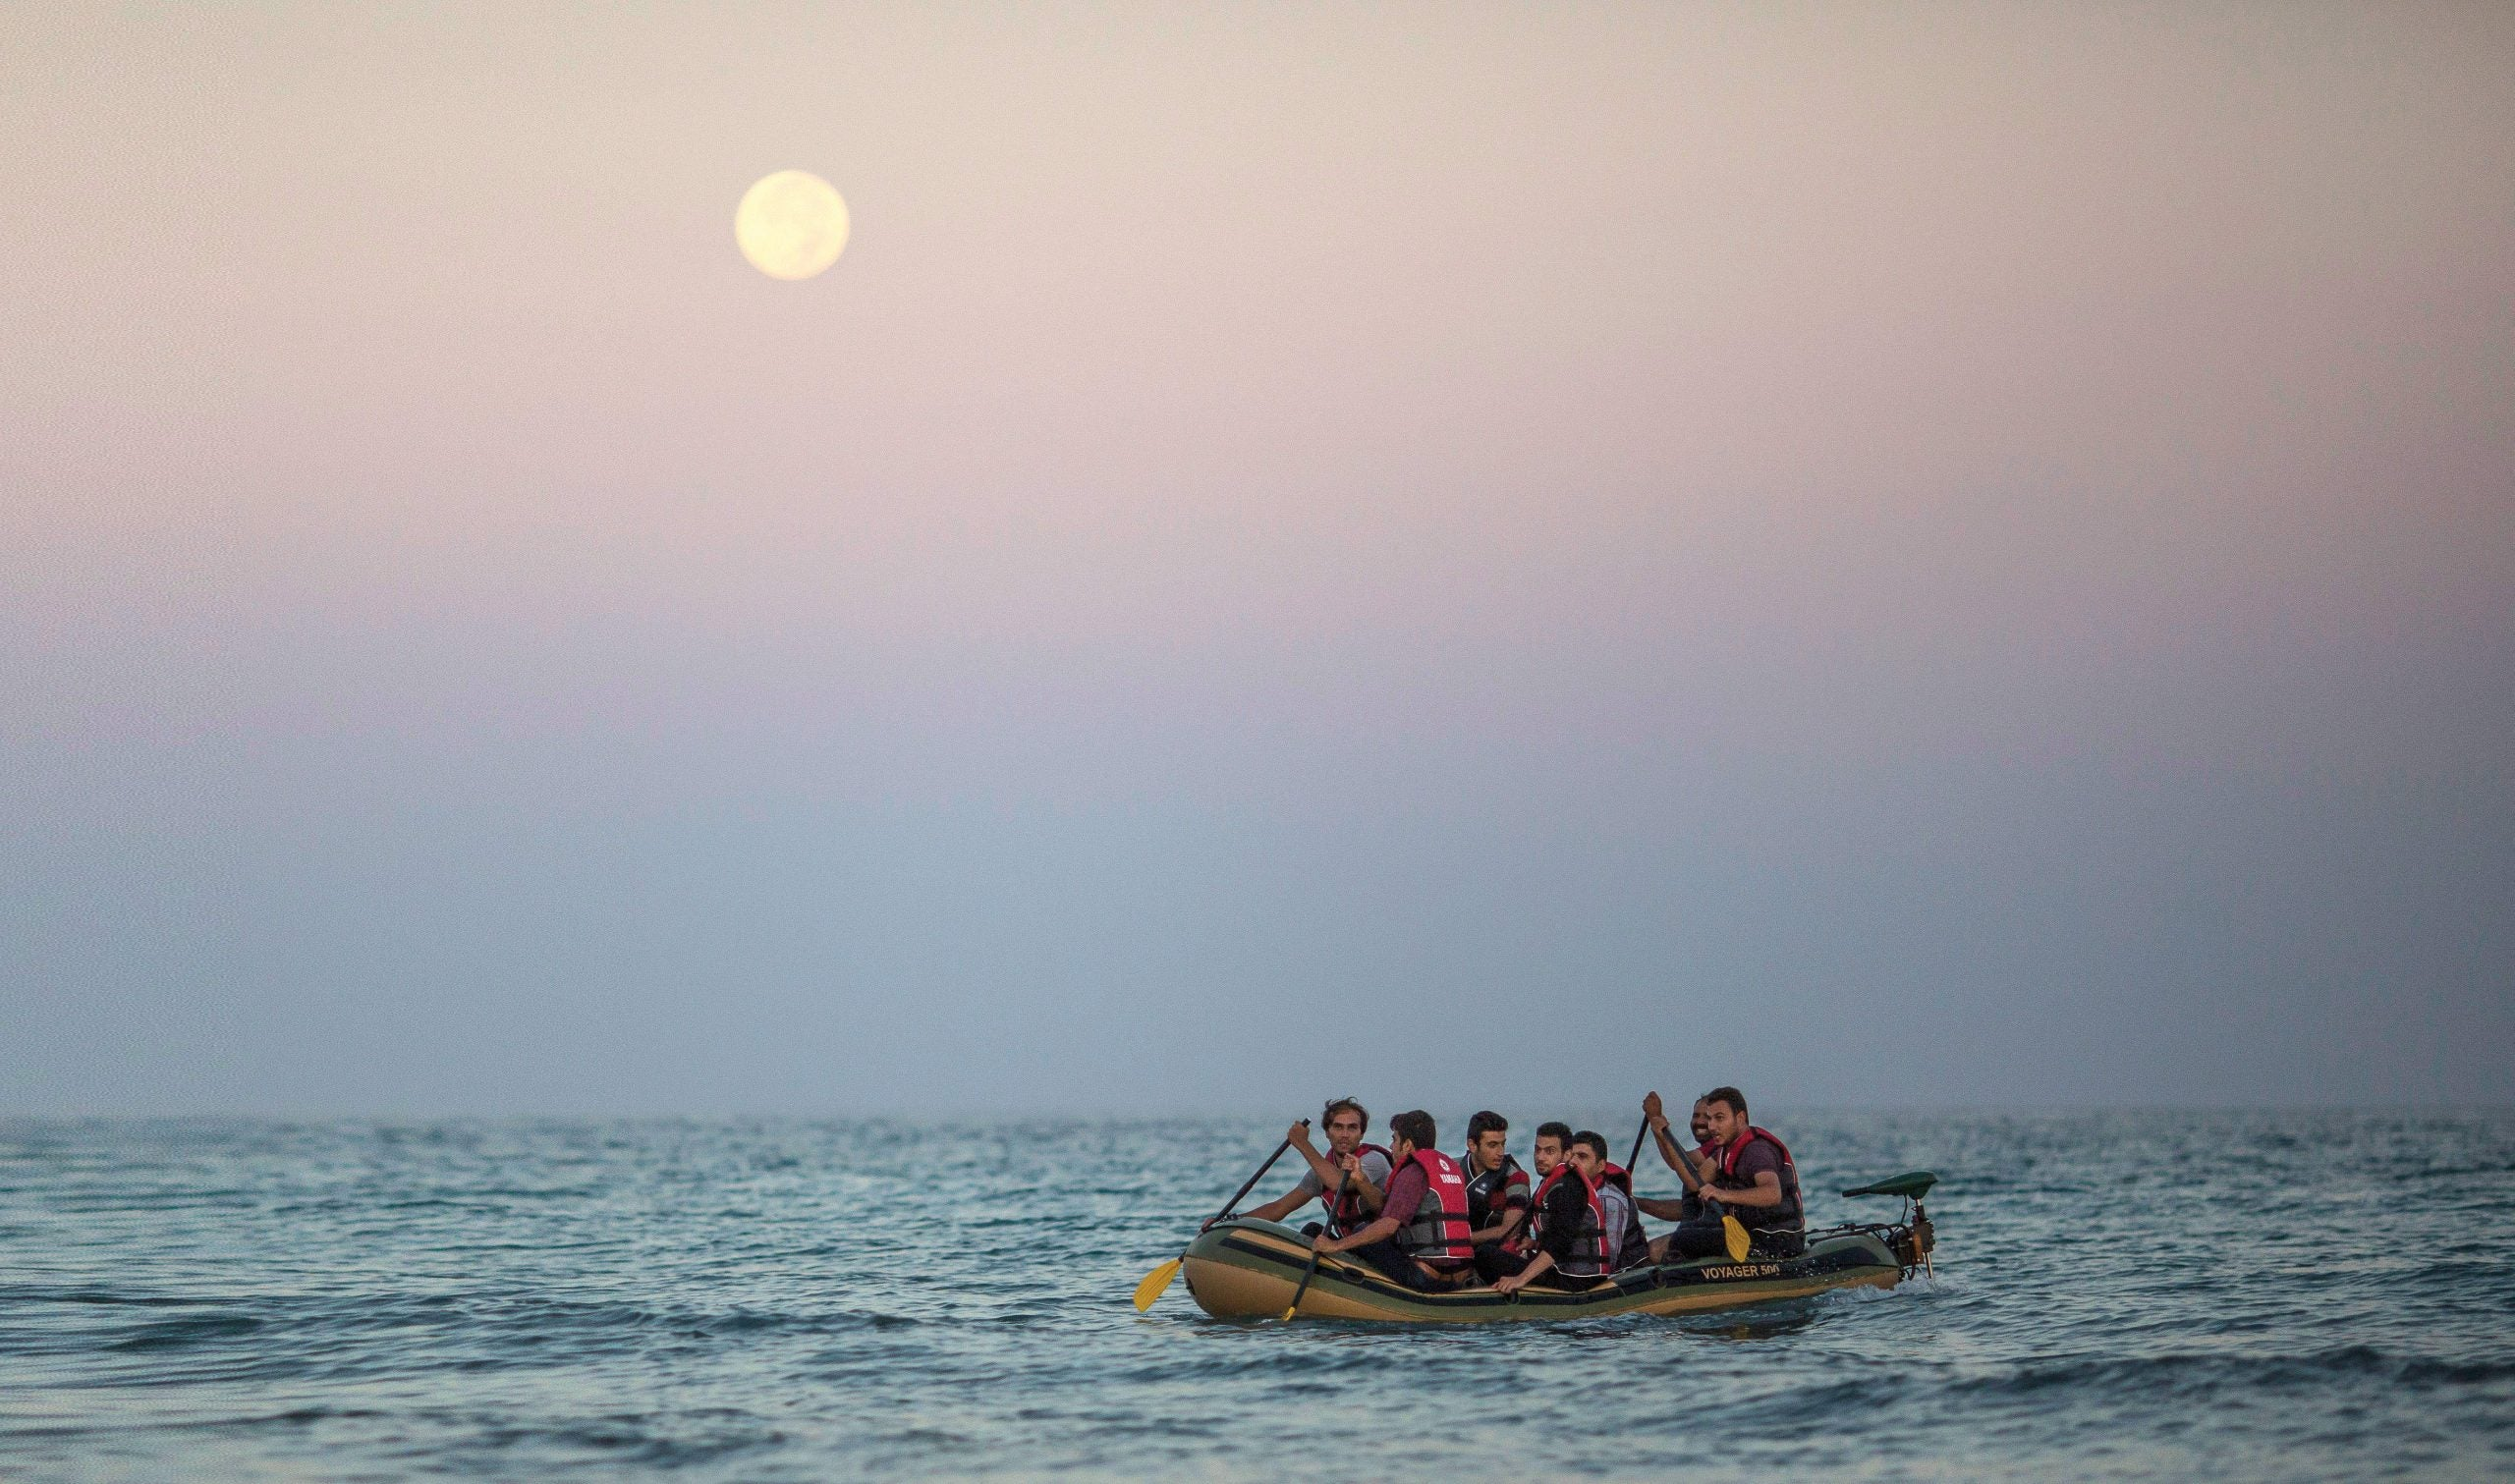 Anatomy of a crisis: the facts on Europe's refugees